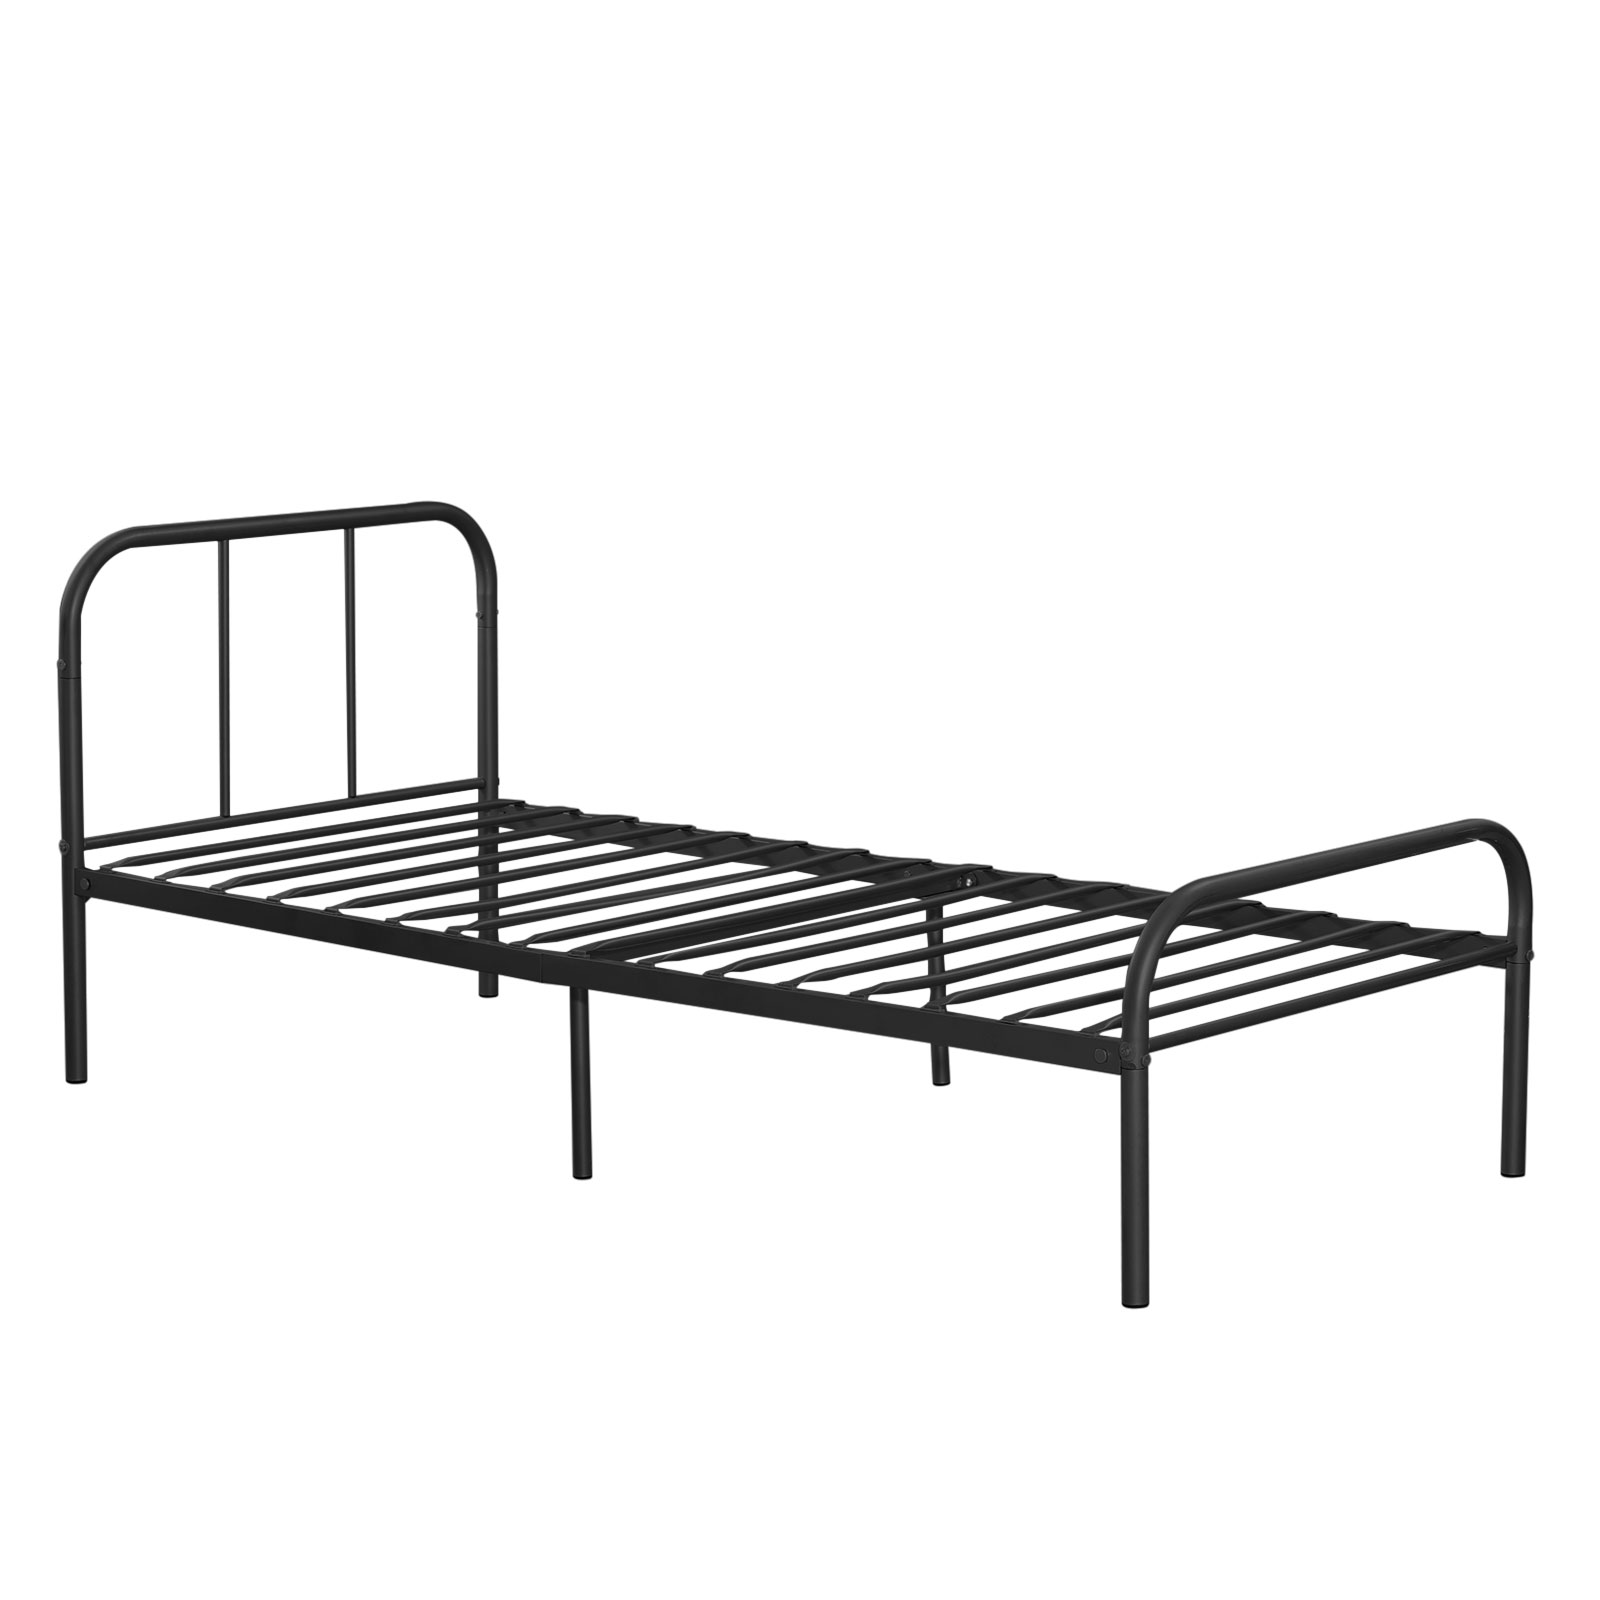 metal platform bed frame twin size bedroom heavy duty mattress foundation black ebay. Black Bedroom Furniture Sets. Home Design Ideas